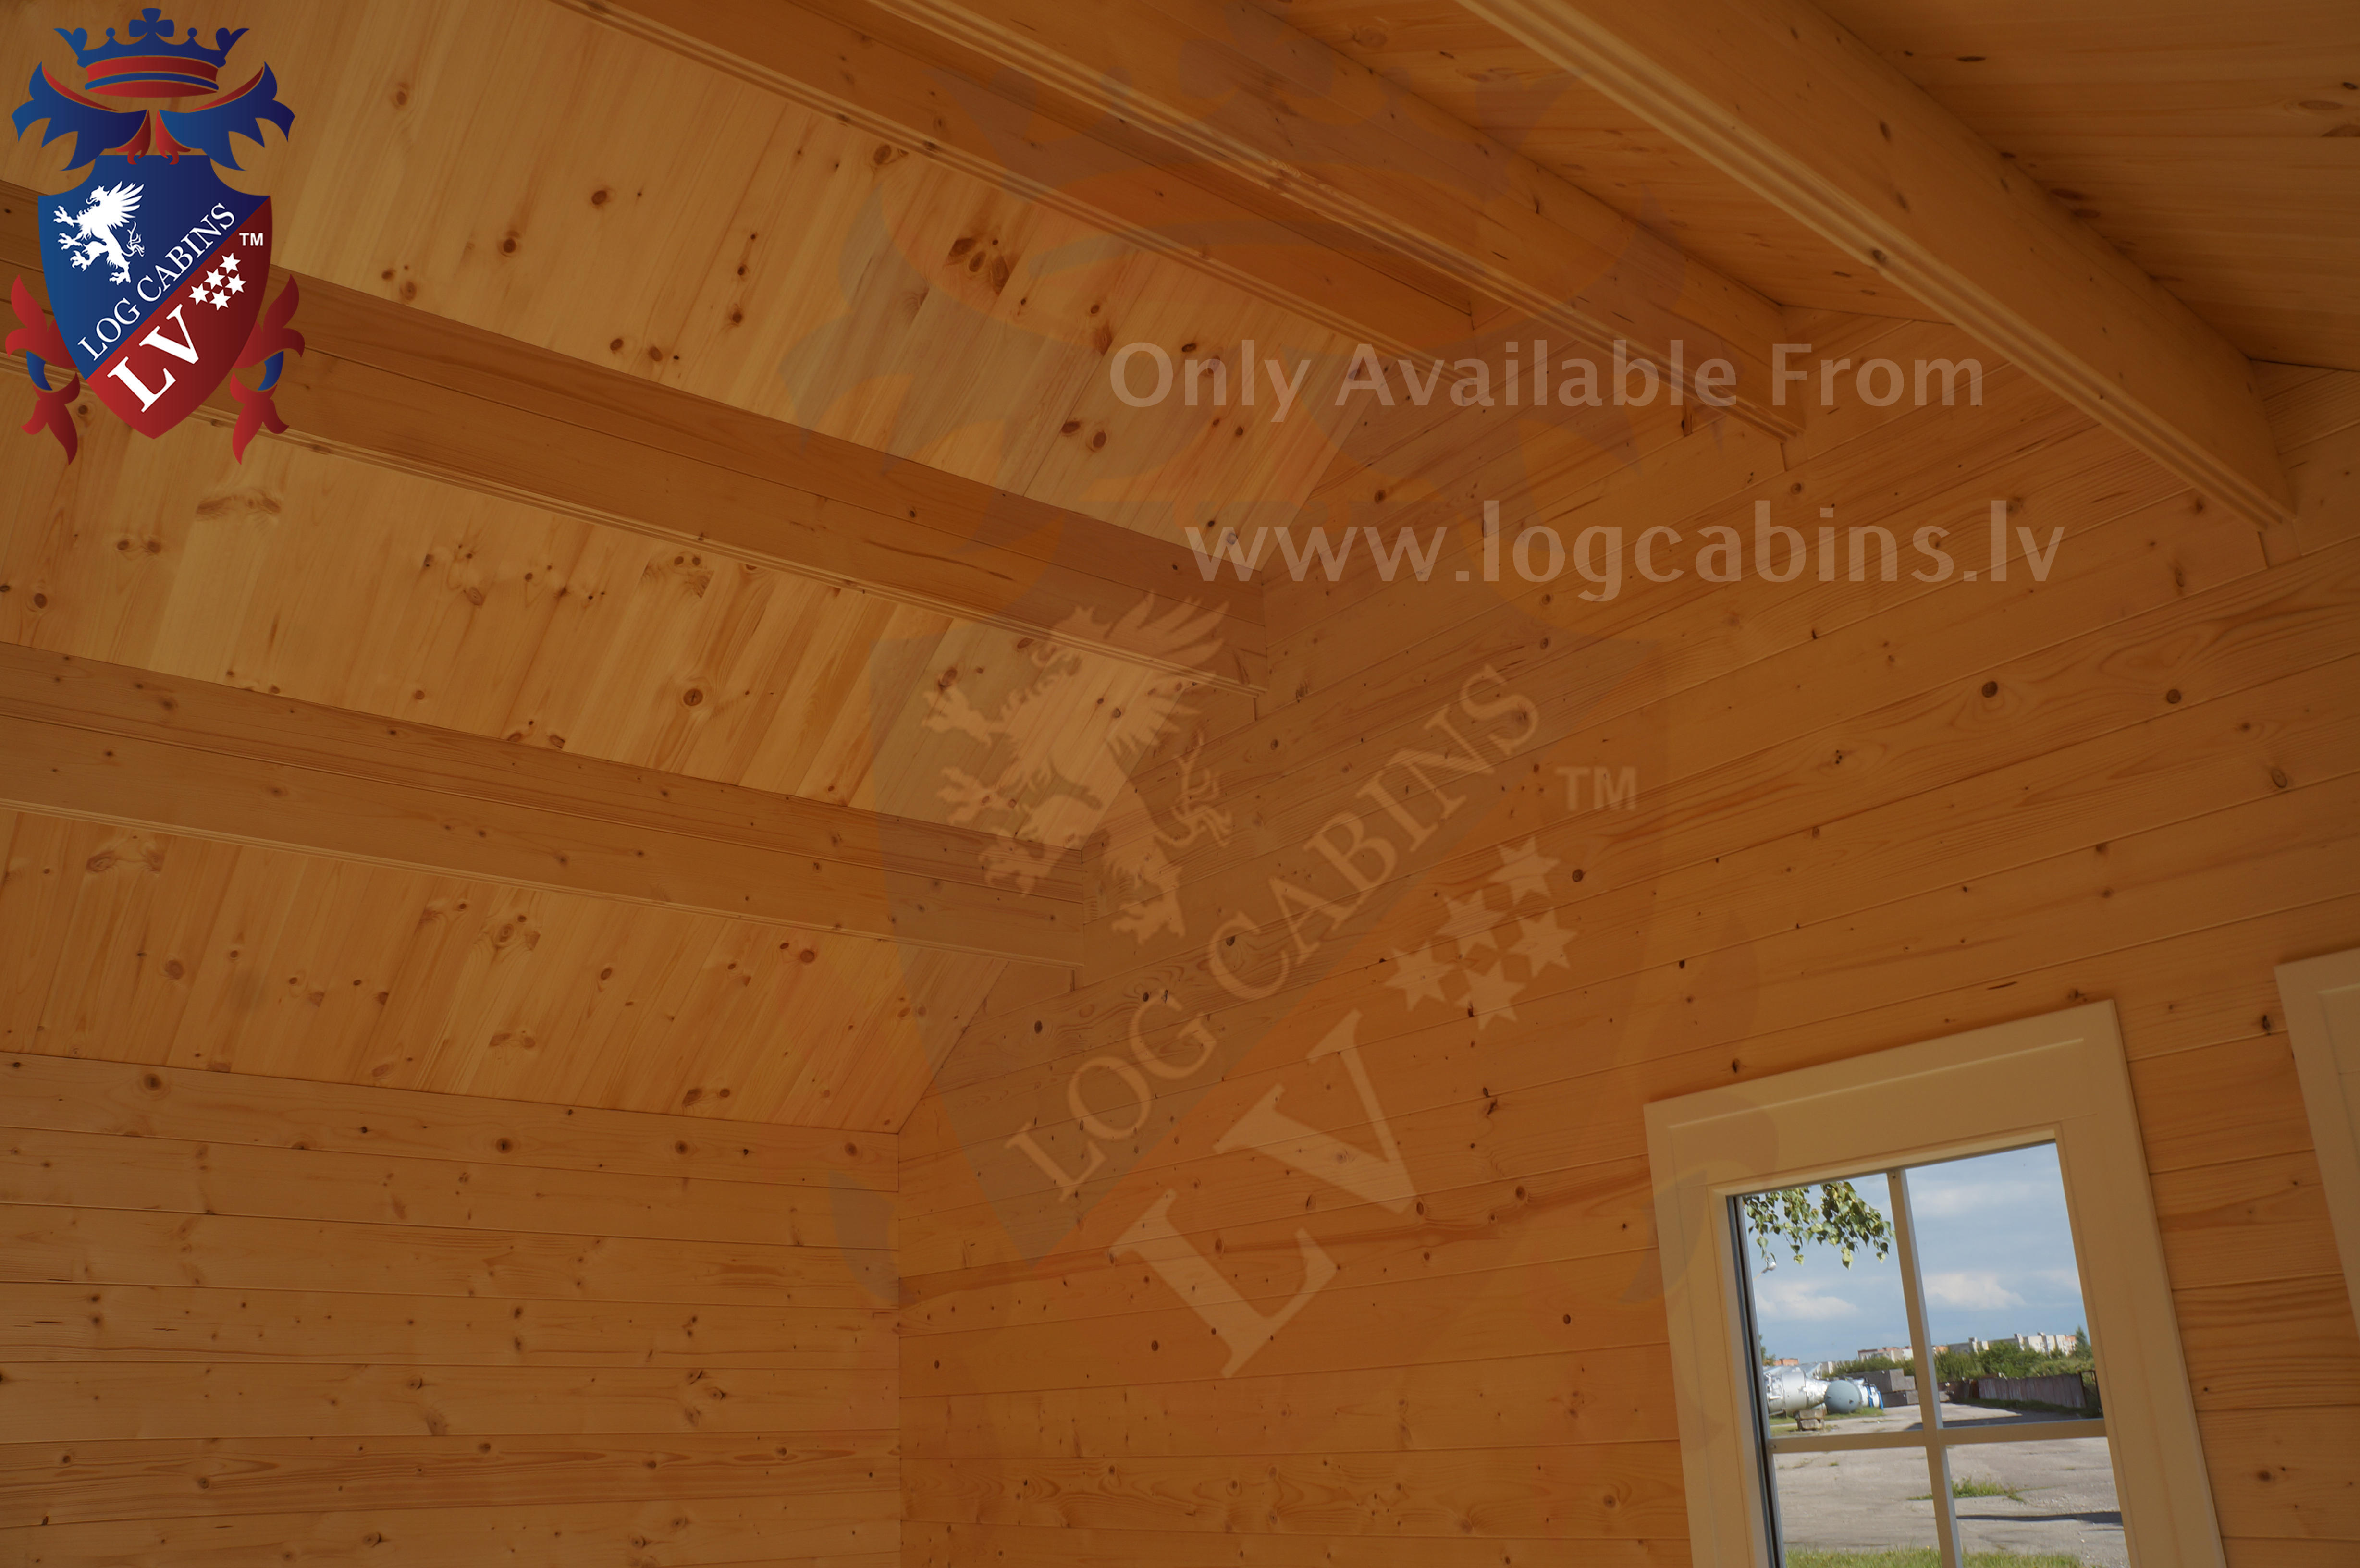 residential windows and doors quality windows log cabins 13